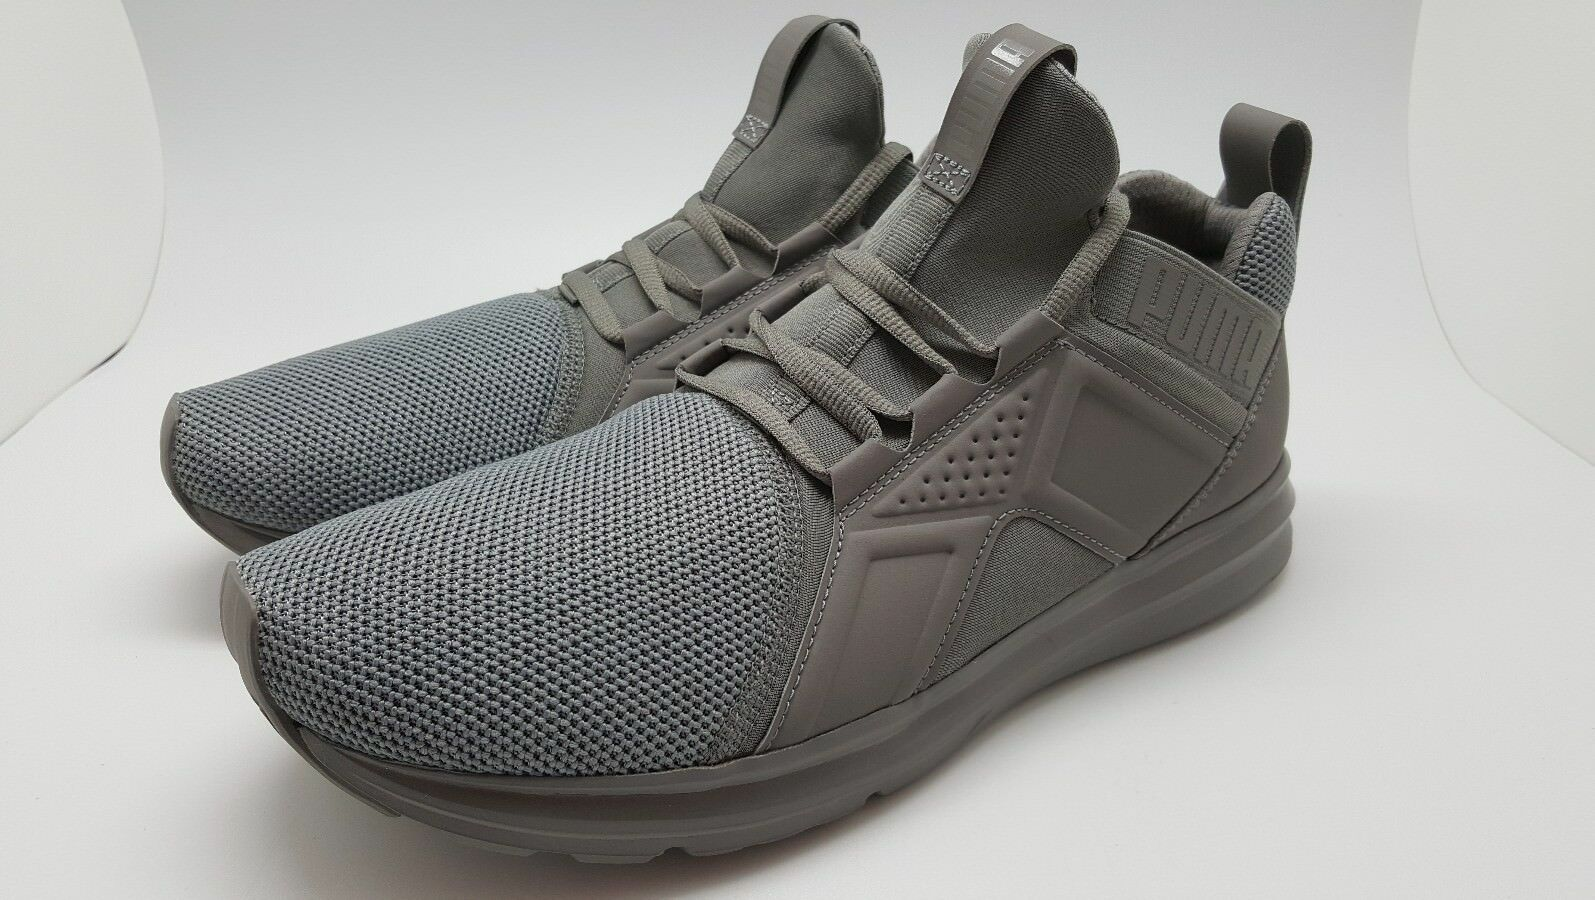 PUMA Men's Enzo Mesh Sneaker Shoe Steel Gray 190015 06 Comfortable